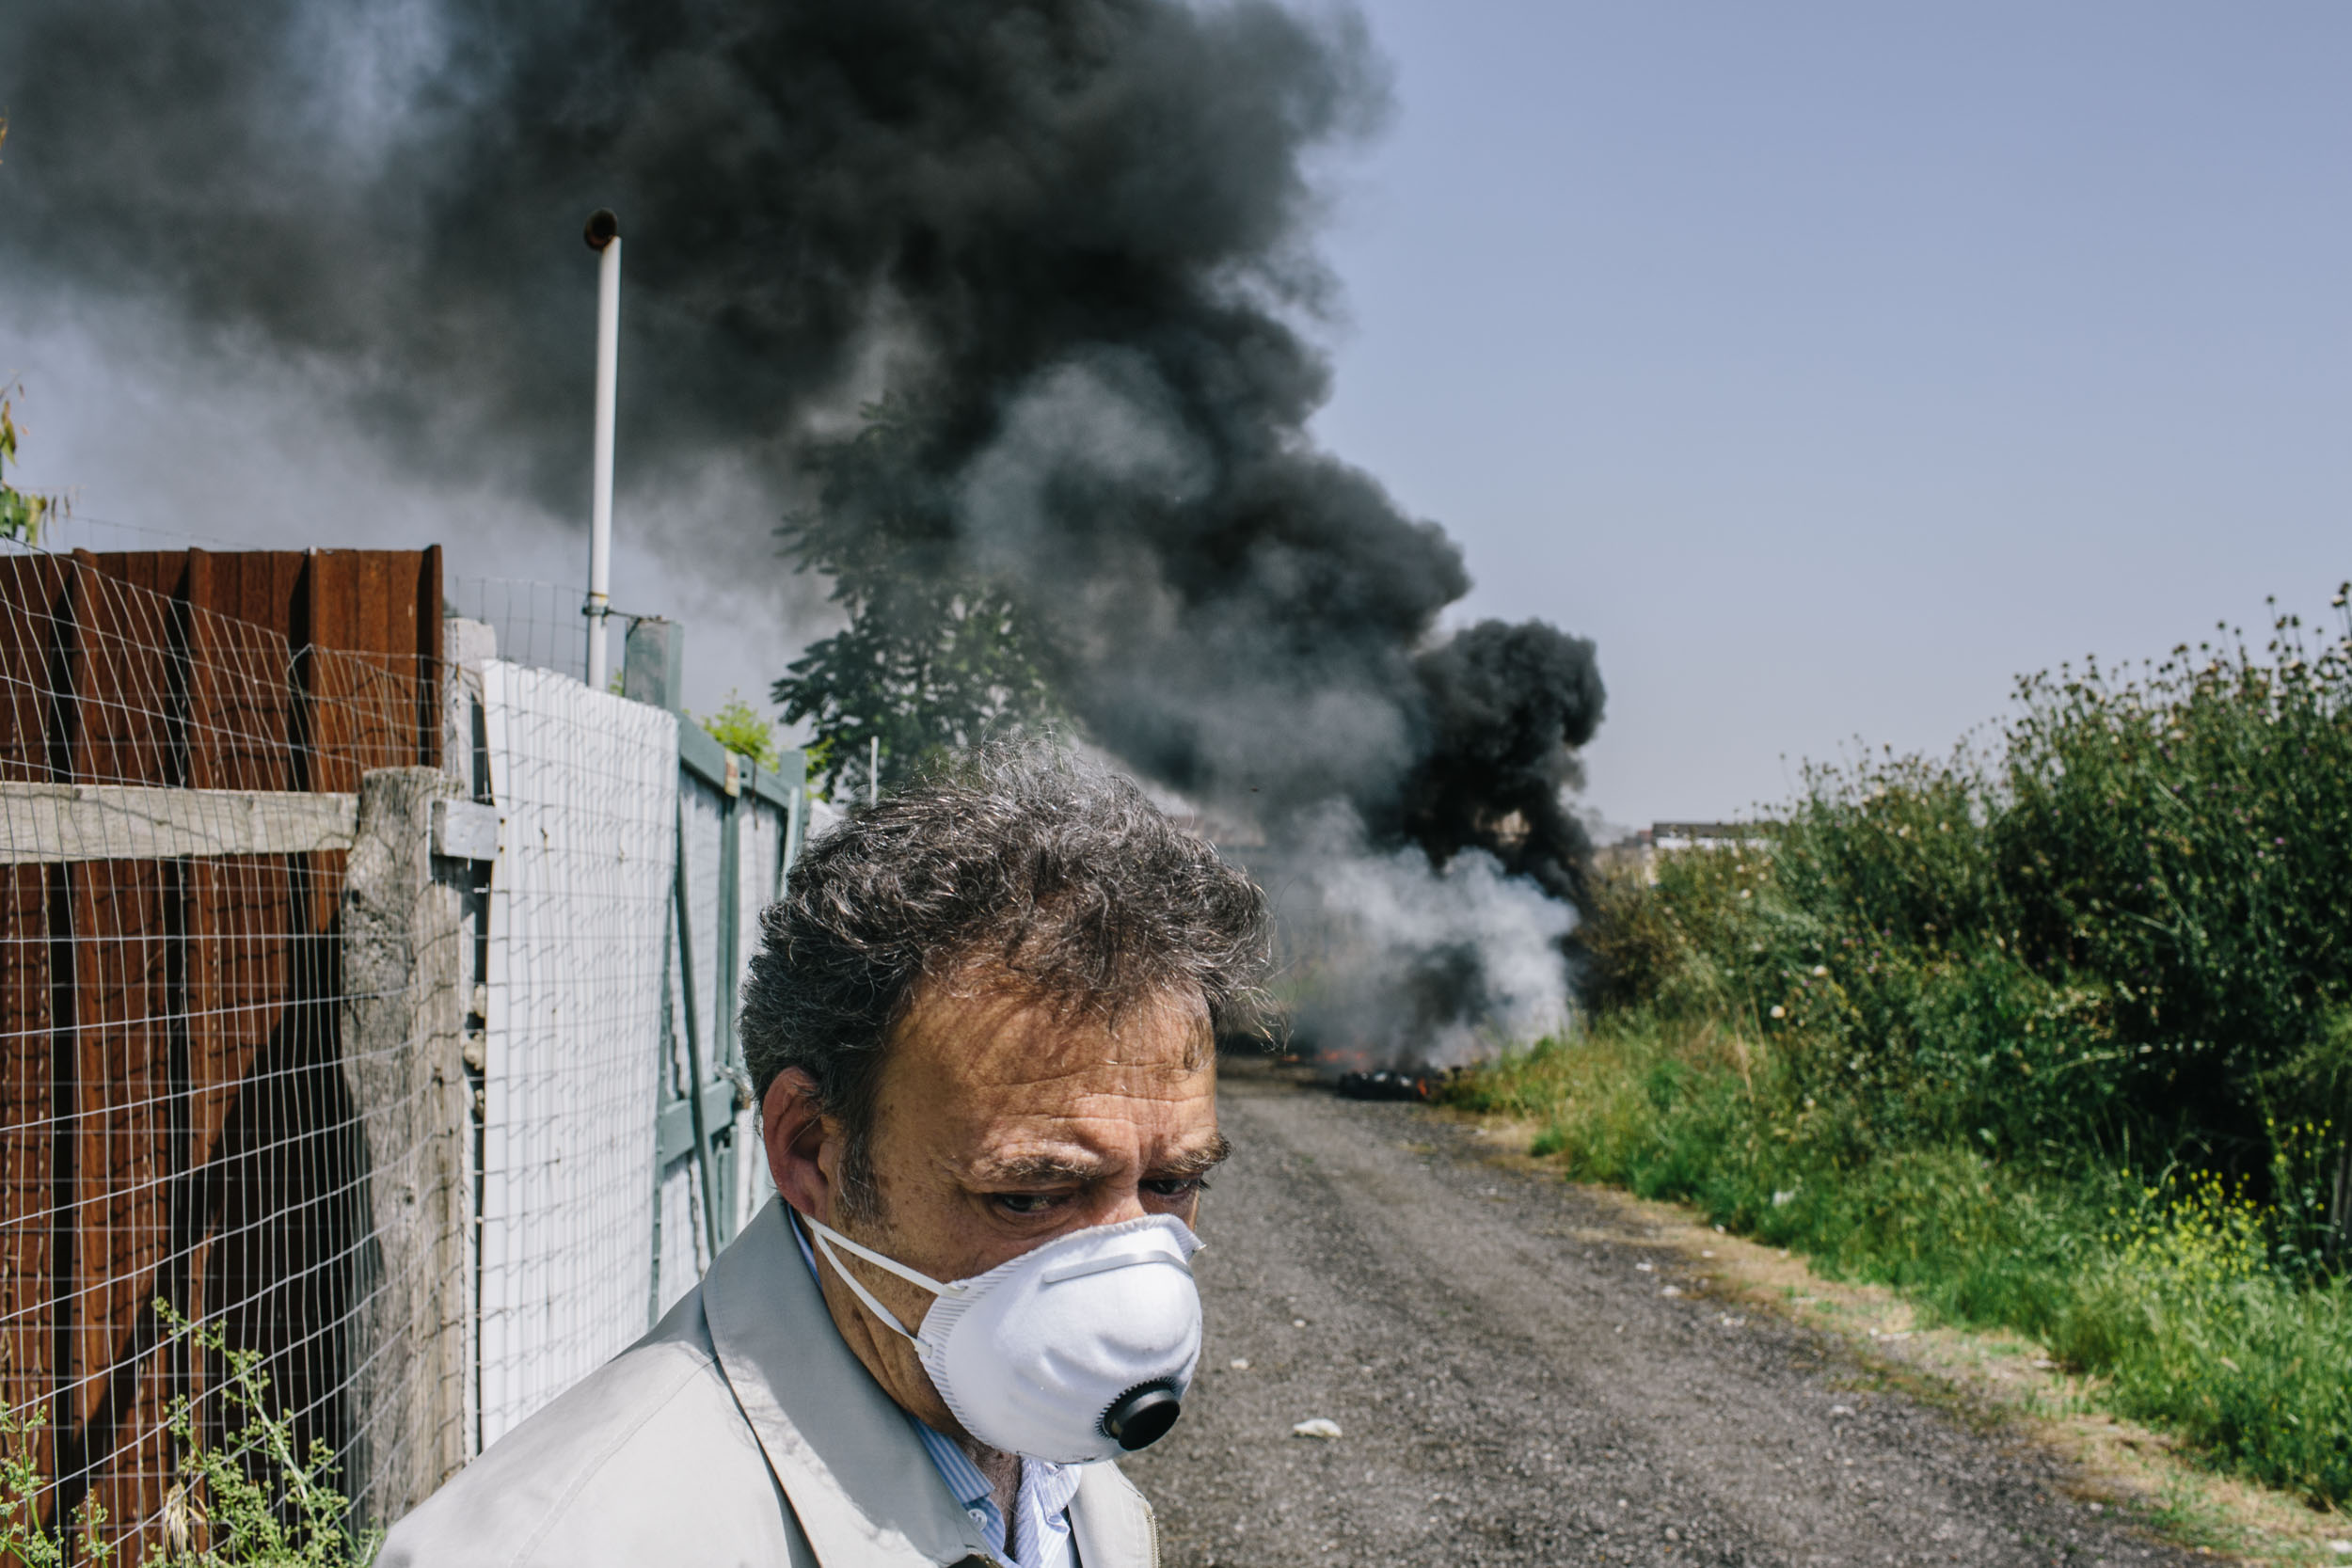 Officials locate a toxic fire deep in the countryside in a town called Pascarola